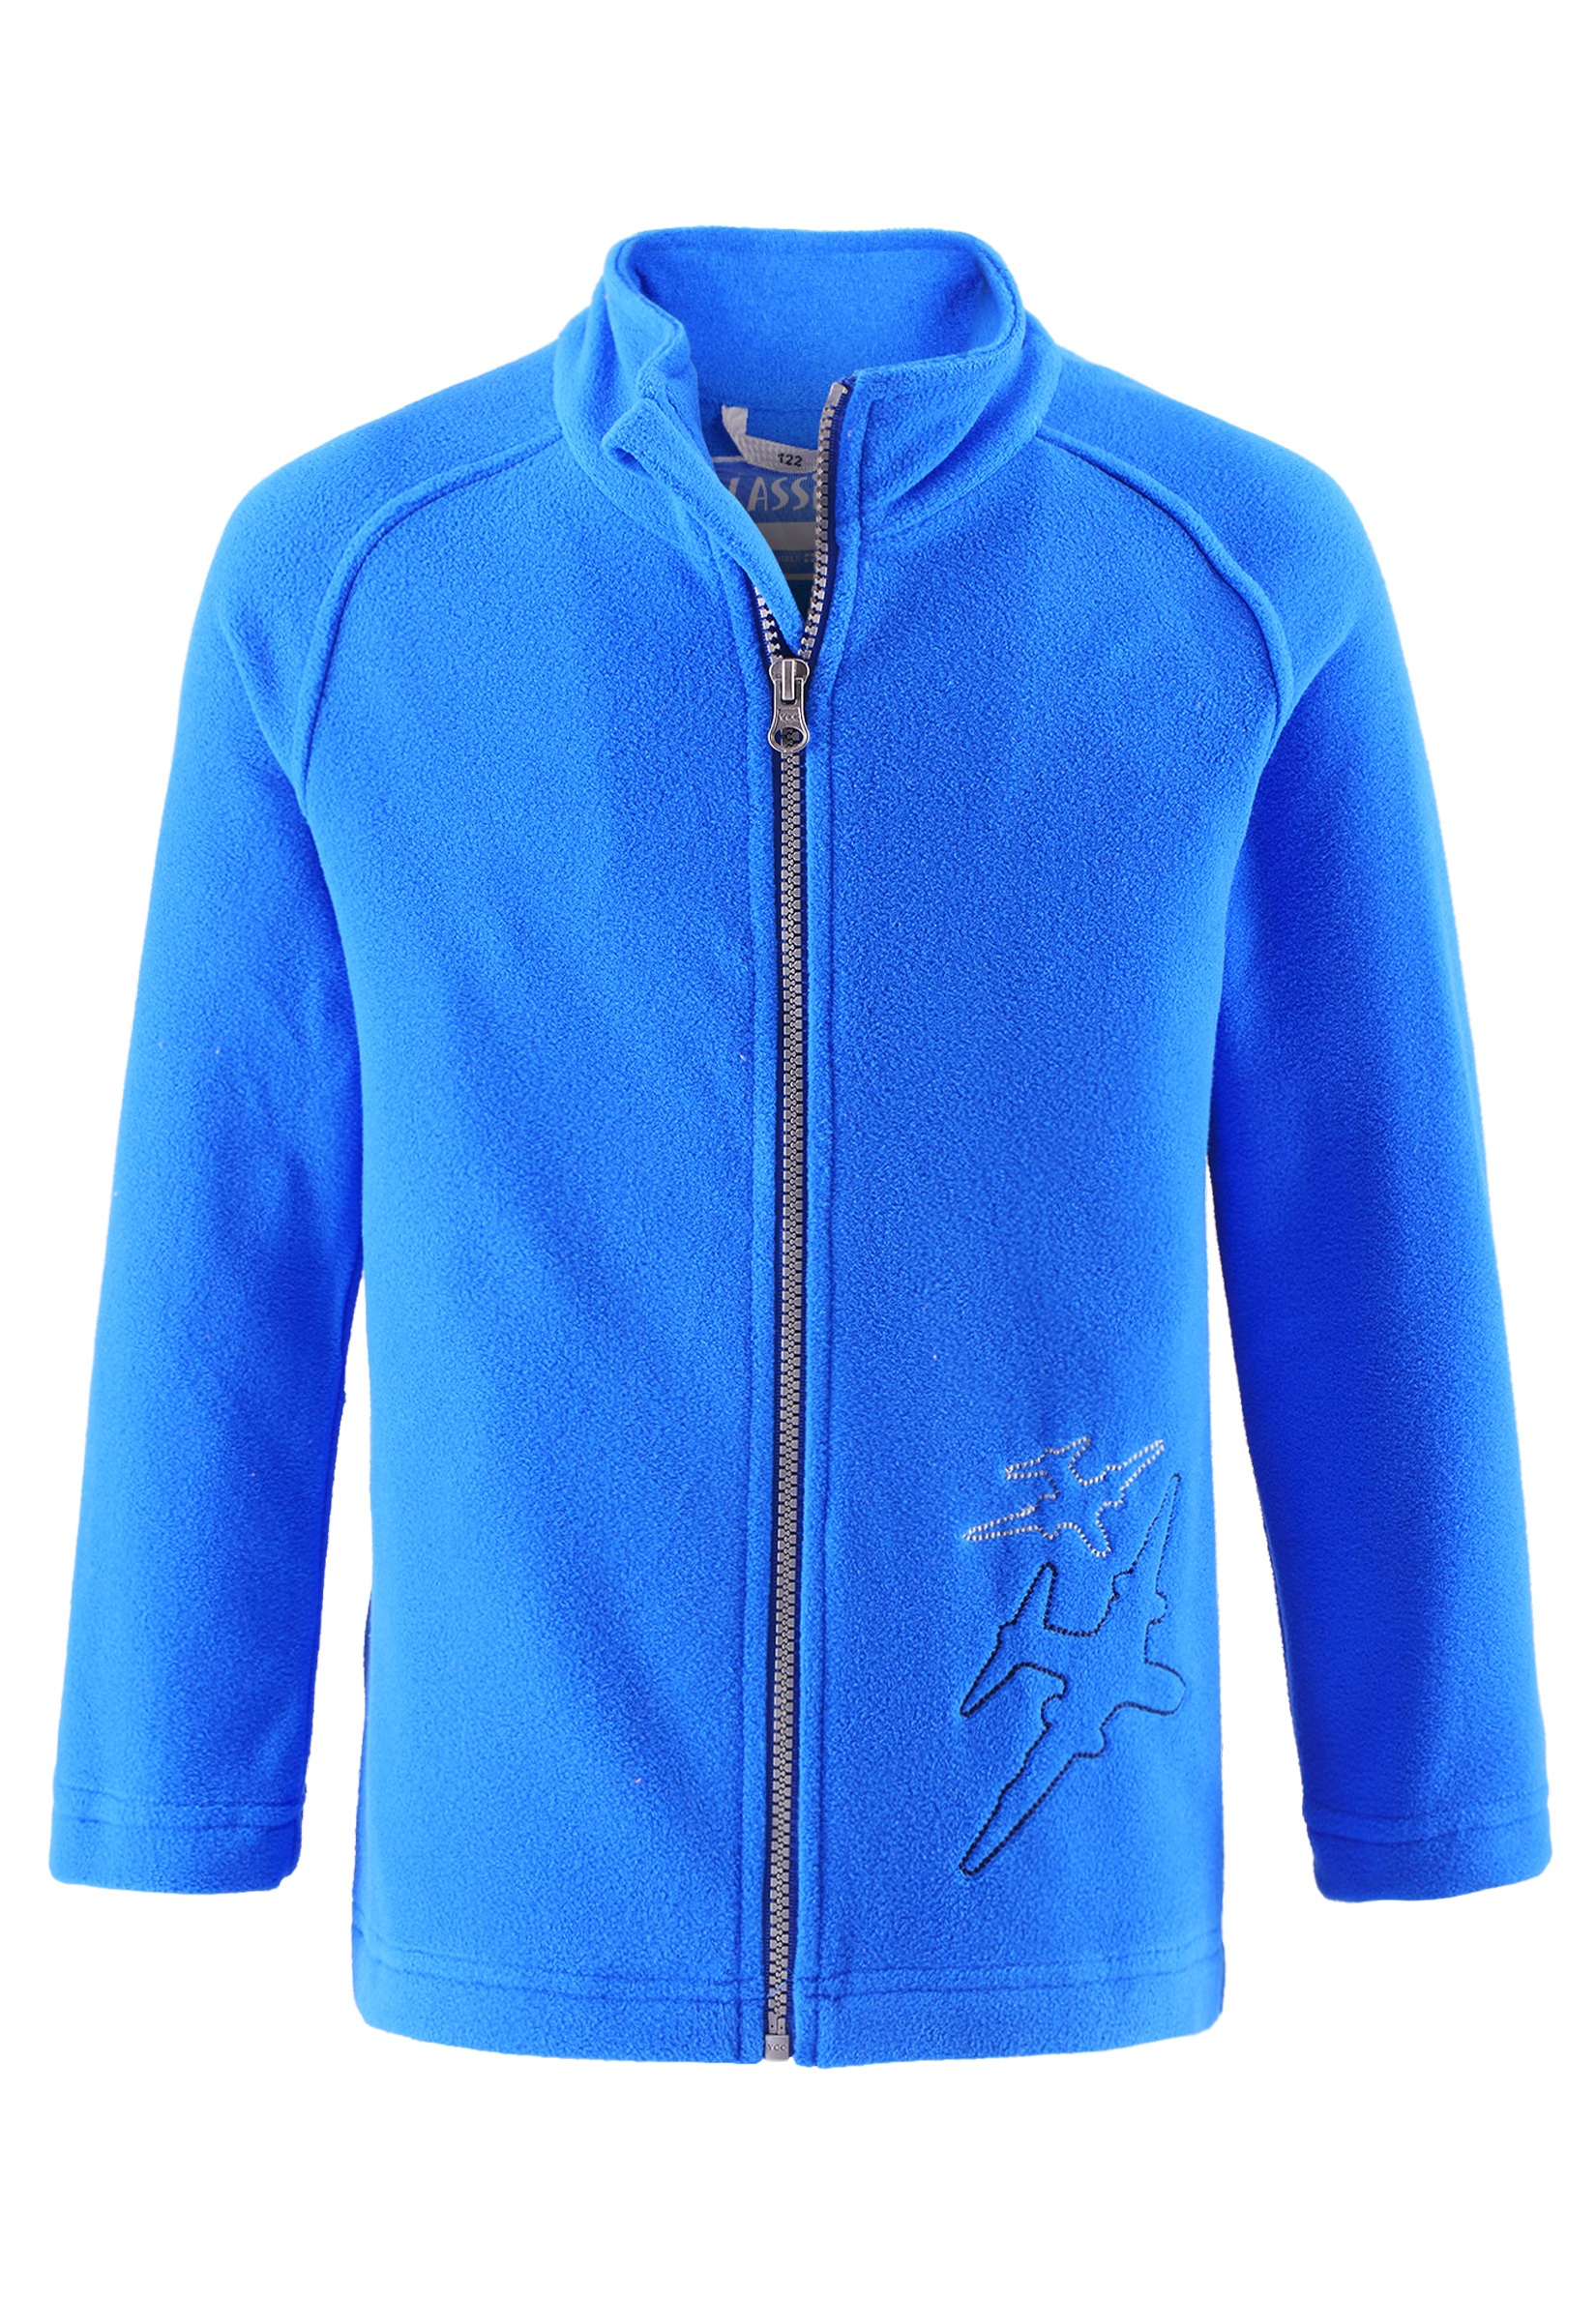 Fleece jacket blue<br><br>Возраст от: None<br>Возраст до: None<br>Цвет: синий<br>Сезон: Зима<br>Категория : Lassie<br>Коллекция: General<br>Размер RU: 116